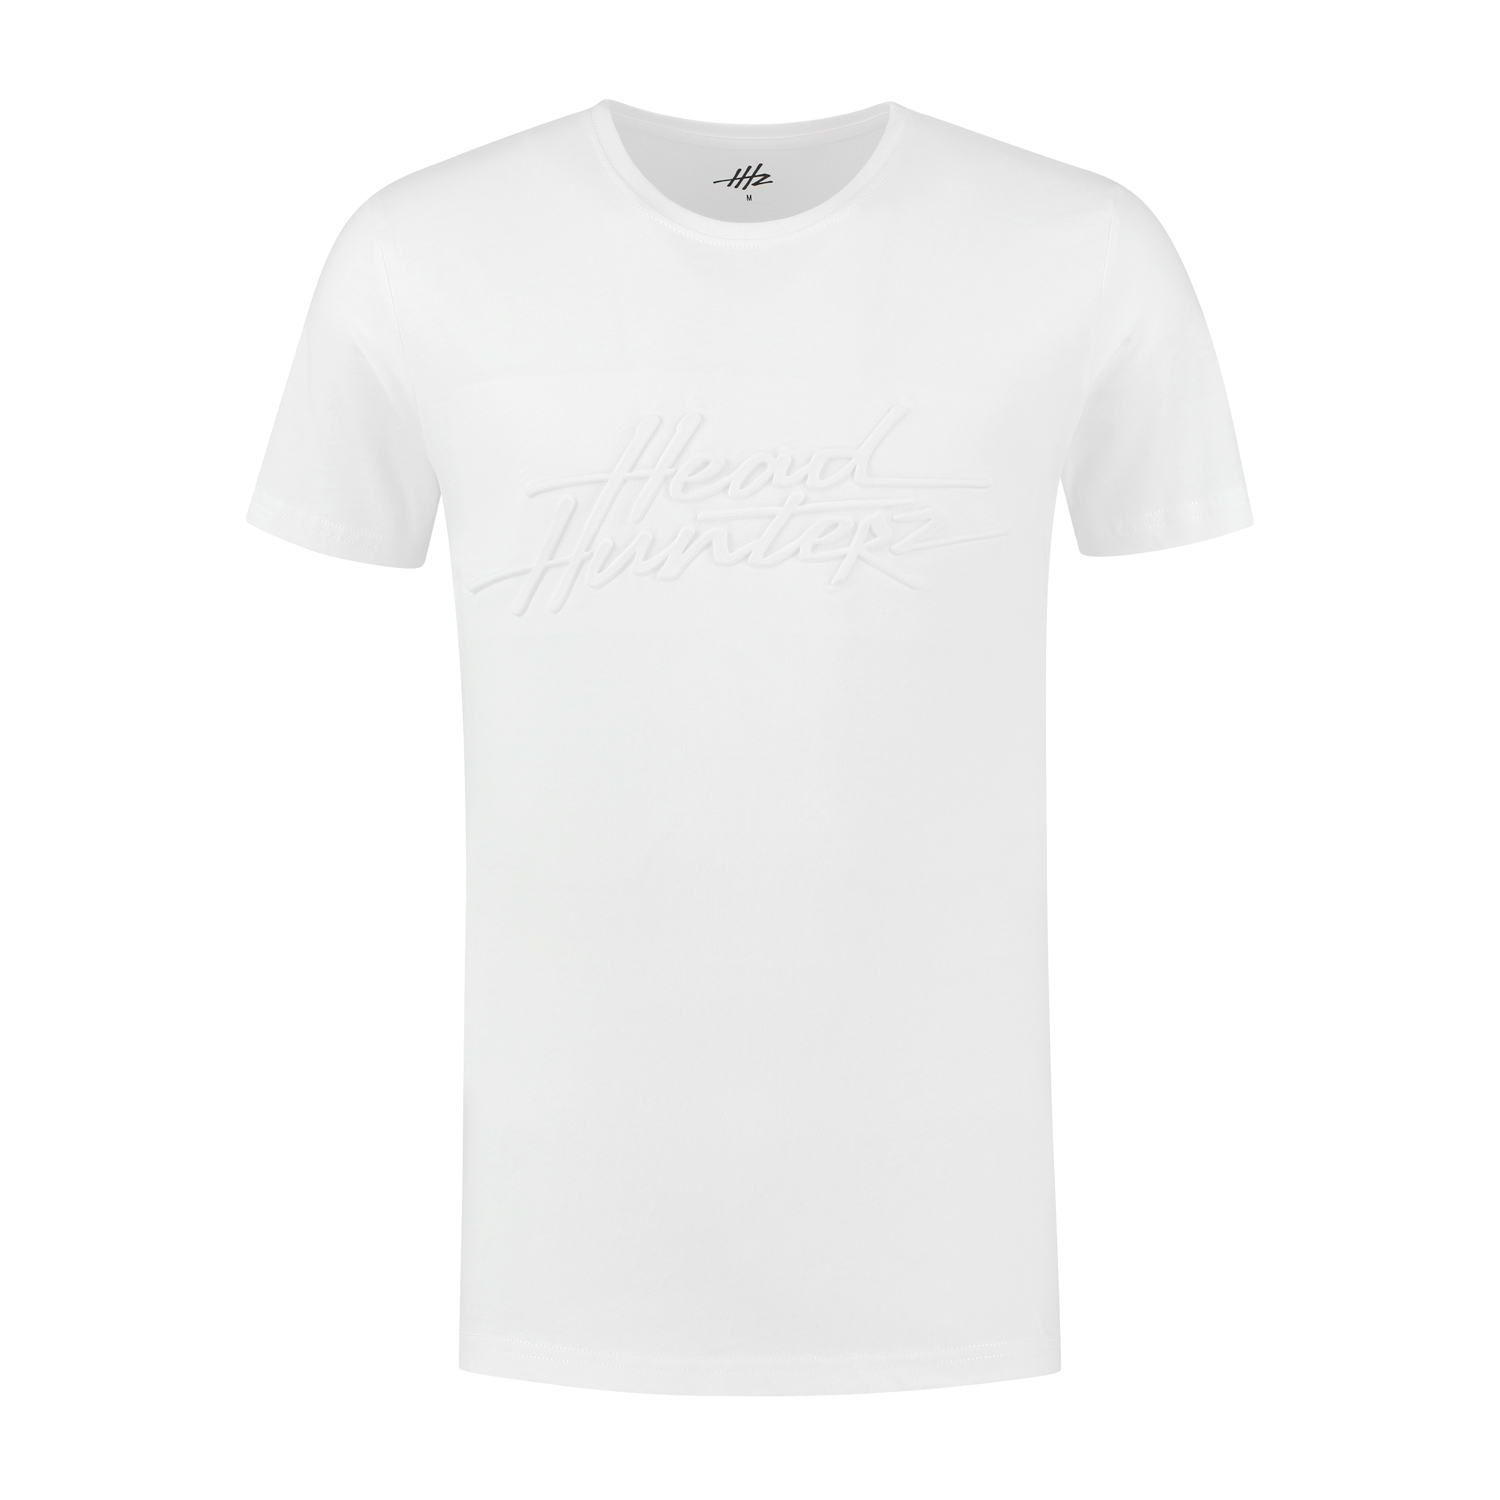 Headhunterz White Tee